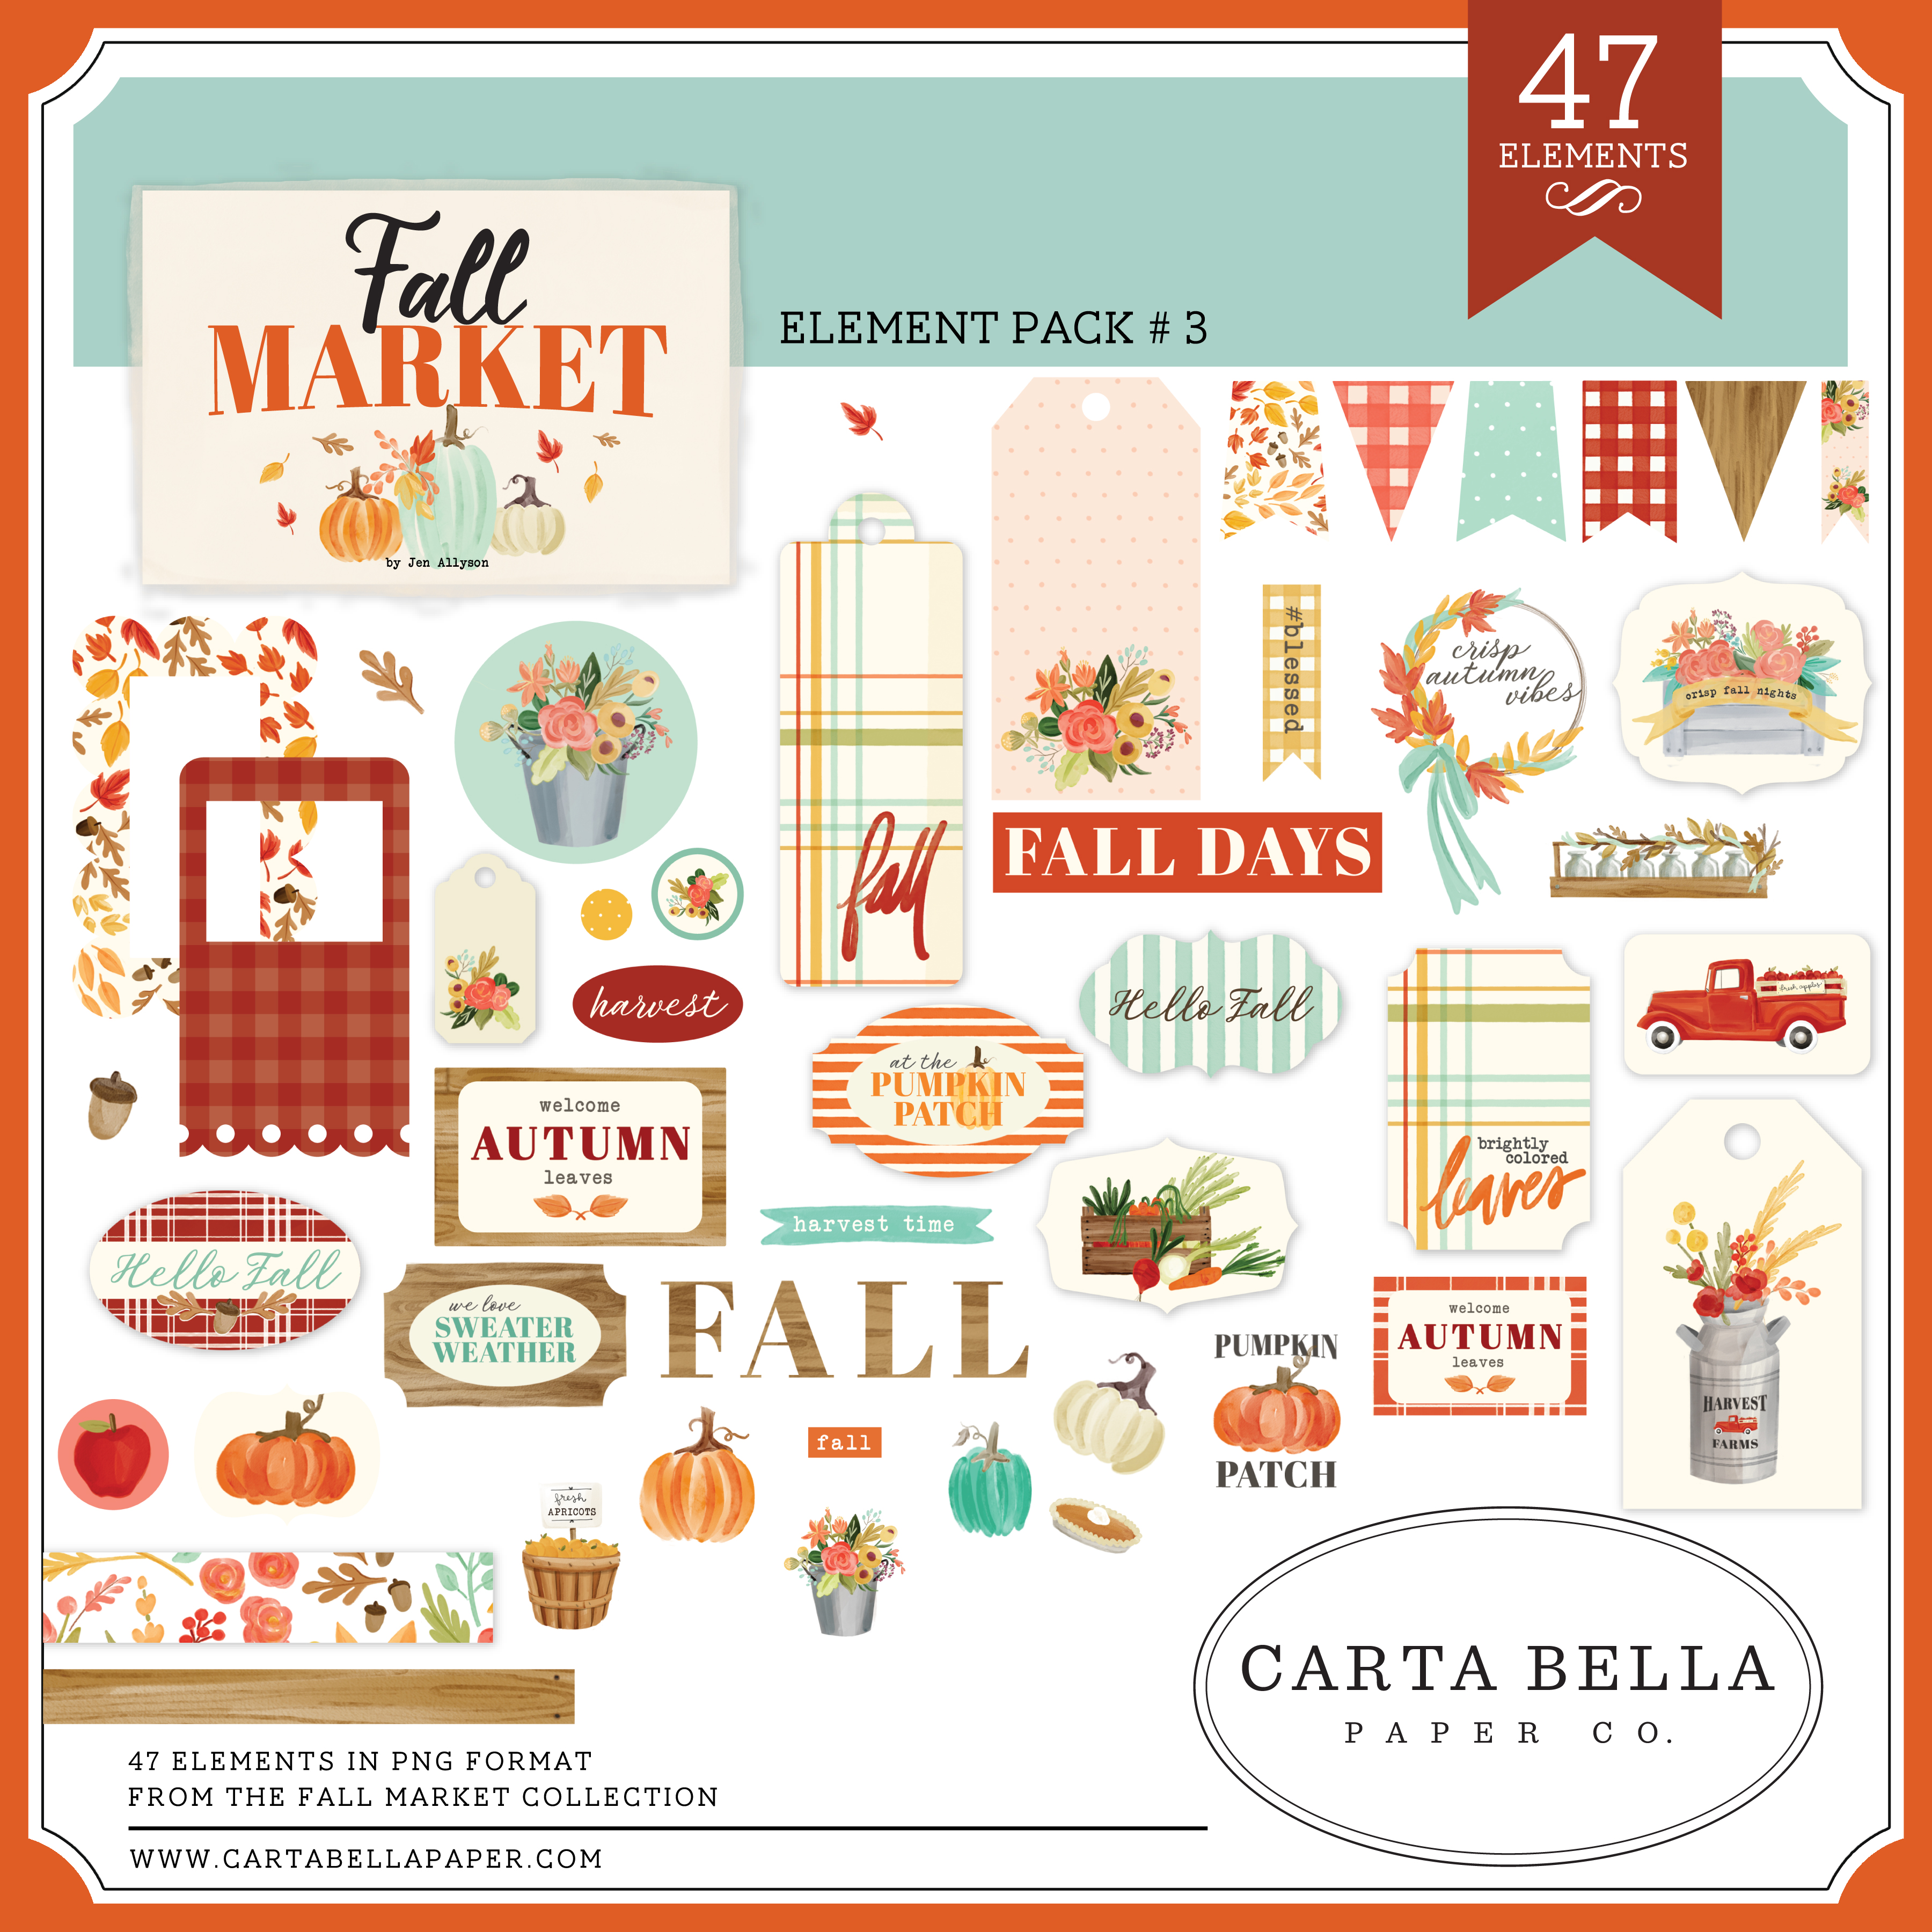 Fall Market Element Pack #3